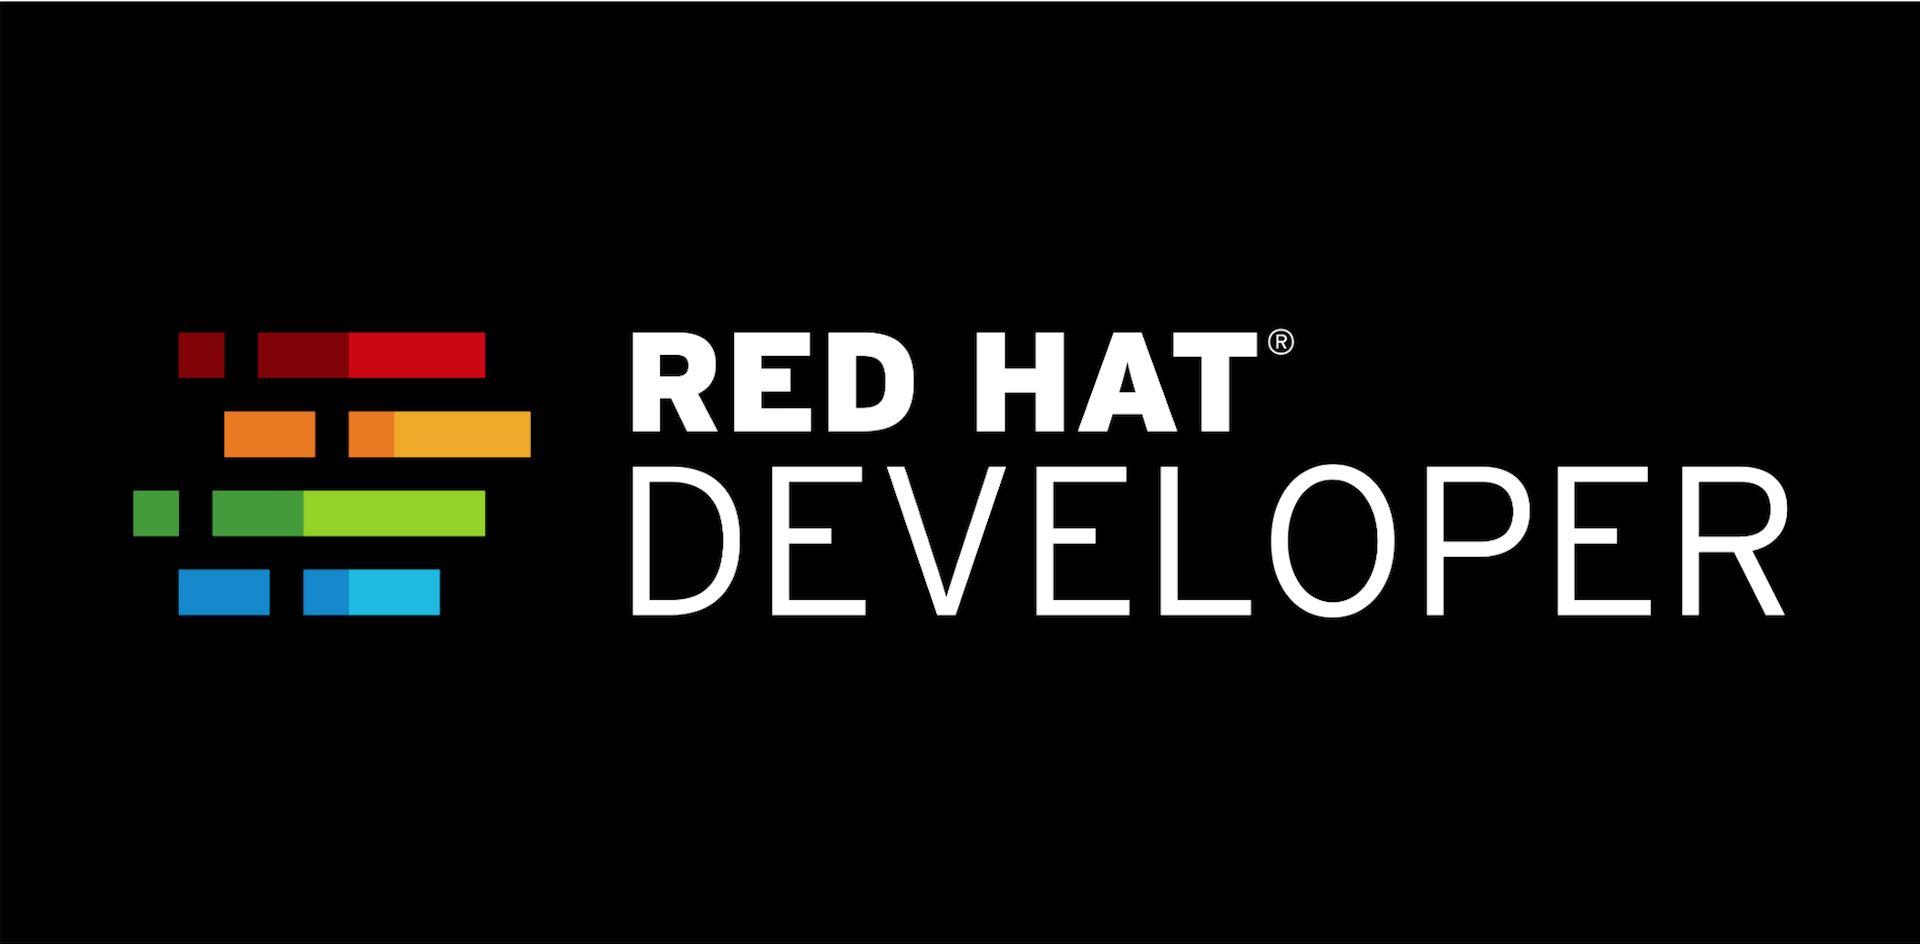 Red Hat Enterprise Linux compiler toolset updates: Clang/LLVM 7.0, Go 1.11, Rust 1.31